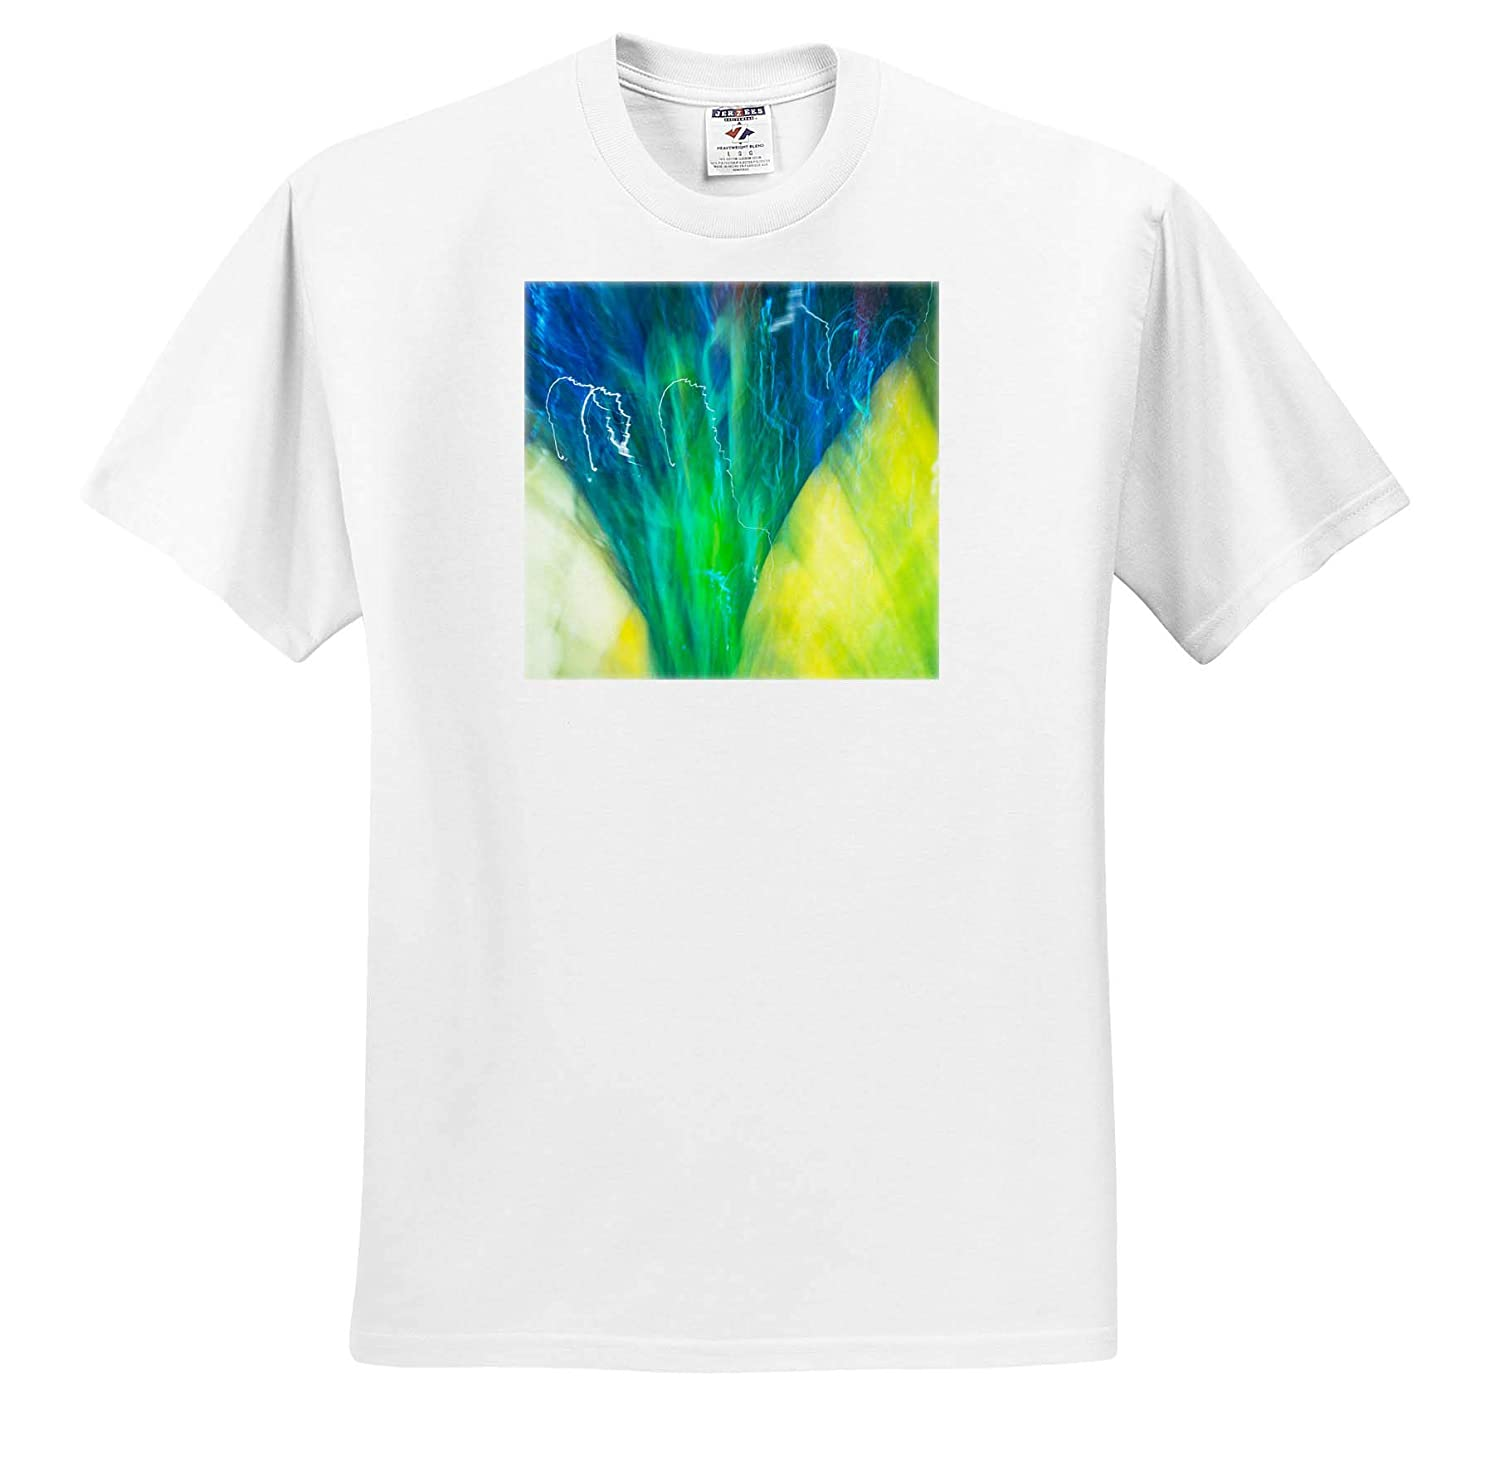 3dRose Danita Delimont ts/_315185 Colorful Glass with Motion Blur Effect Adult T-Shirt XL Abstracts